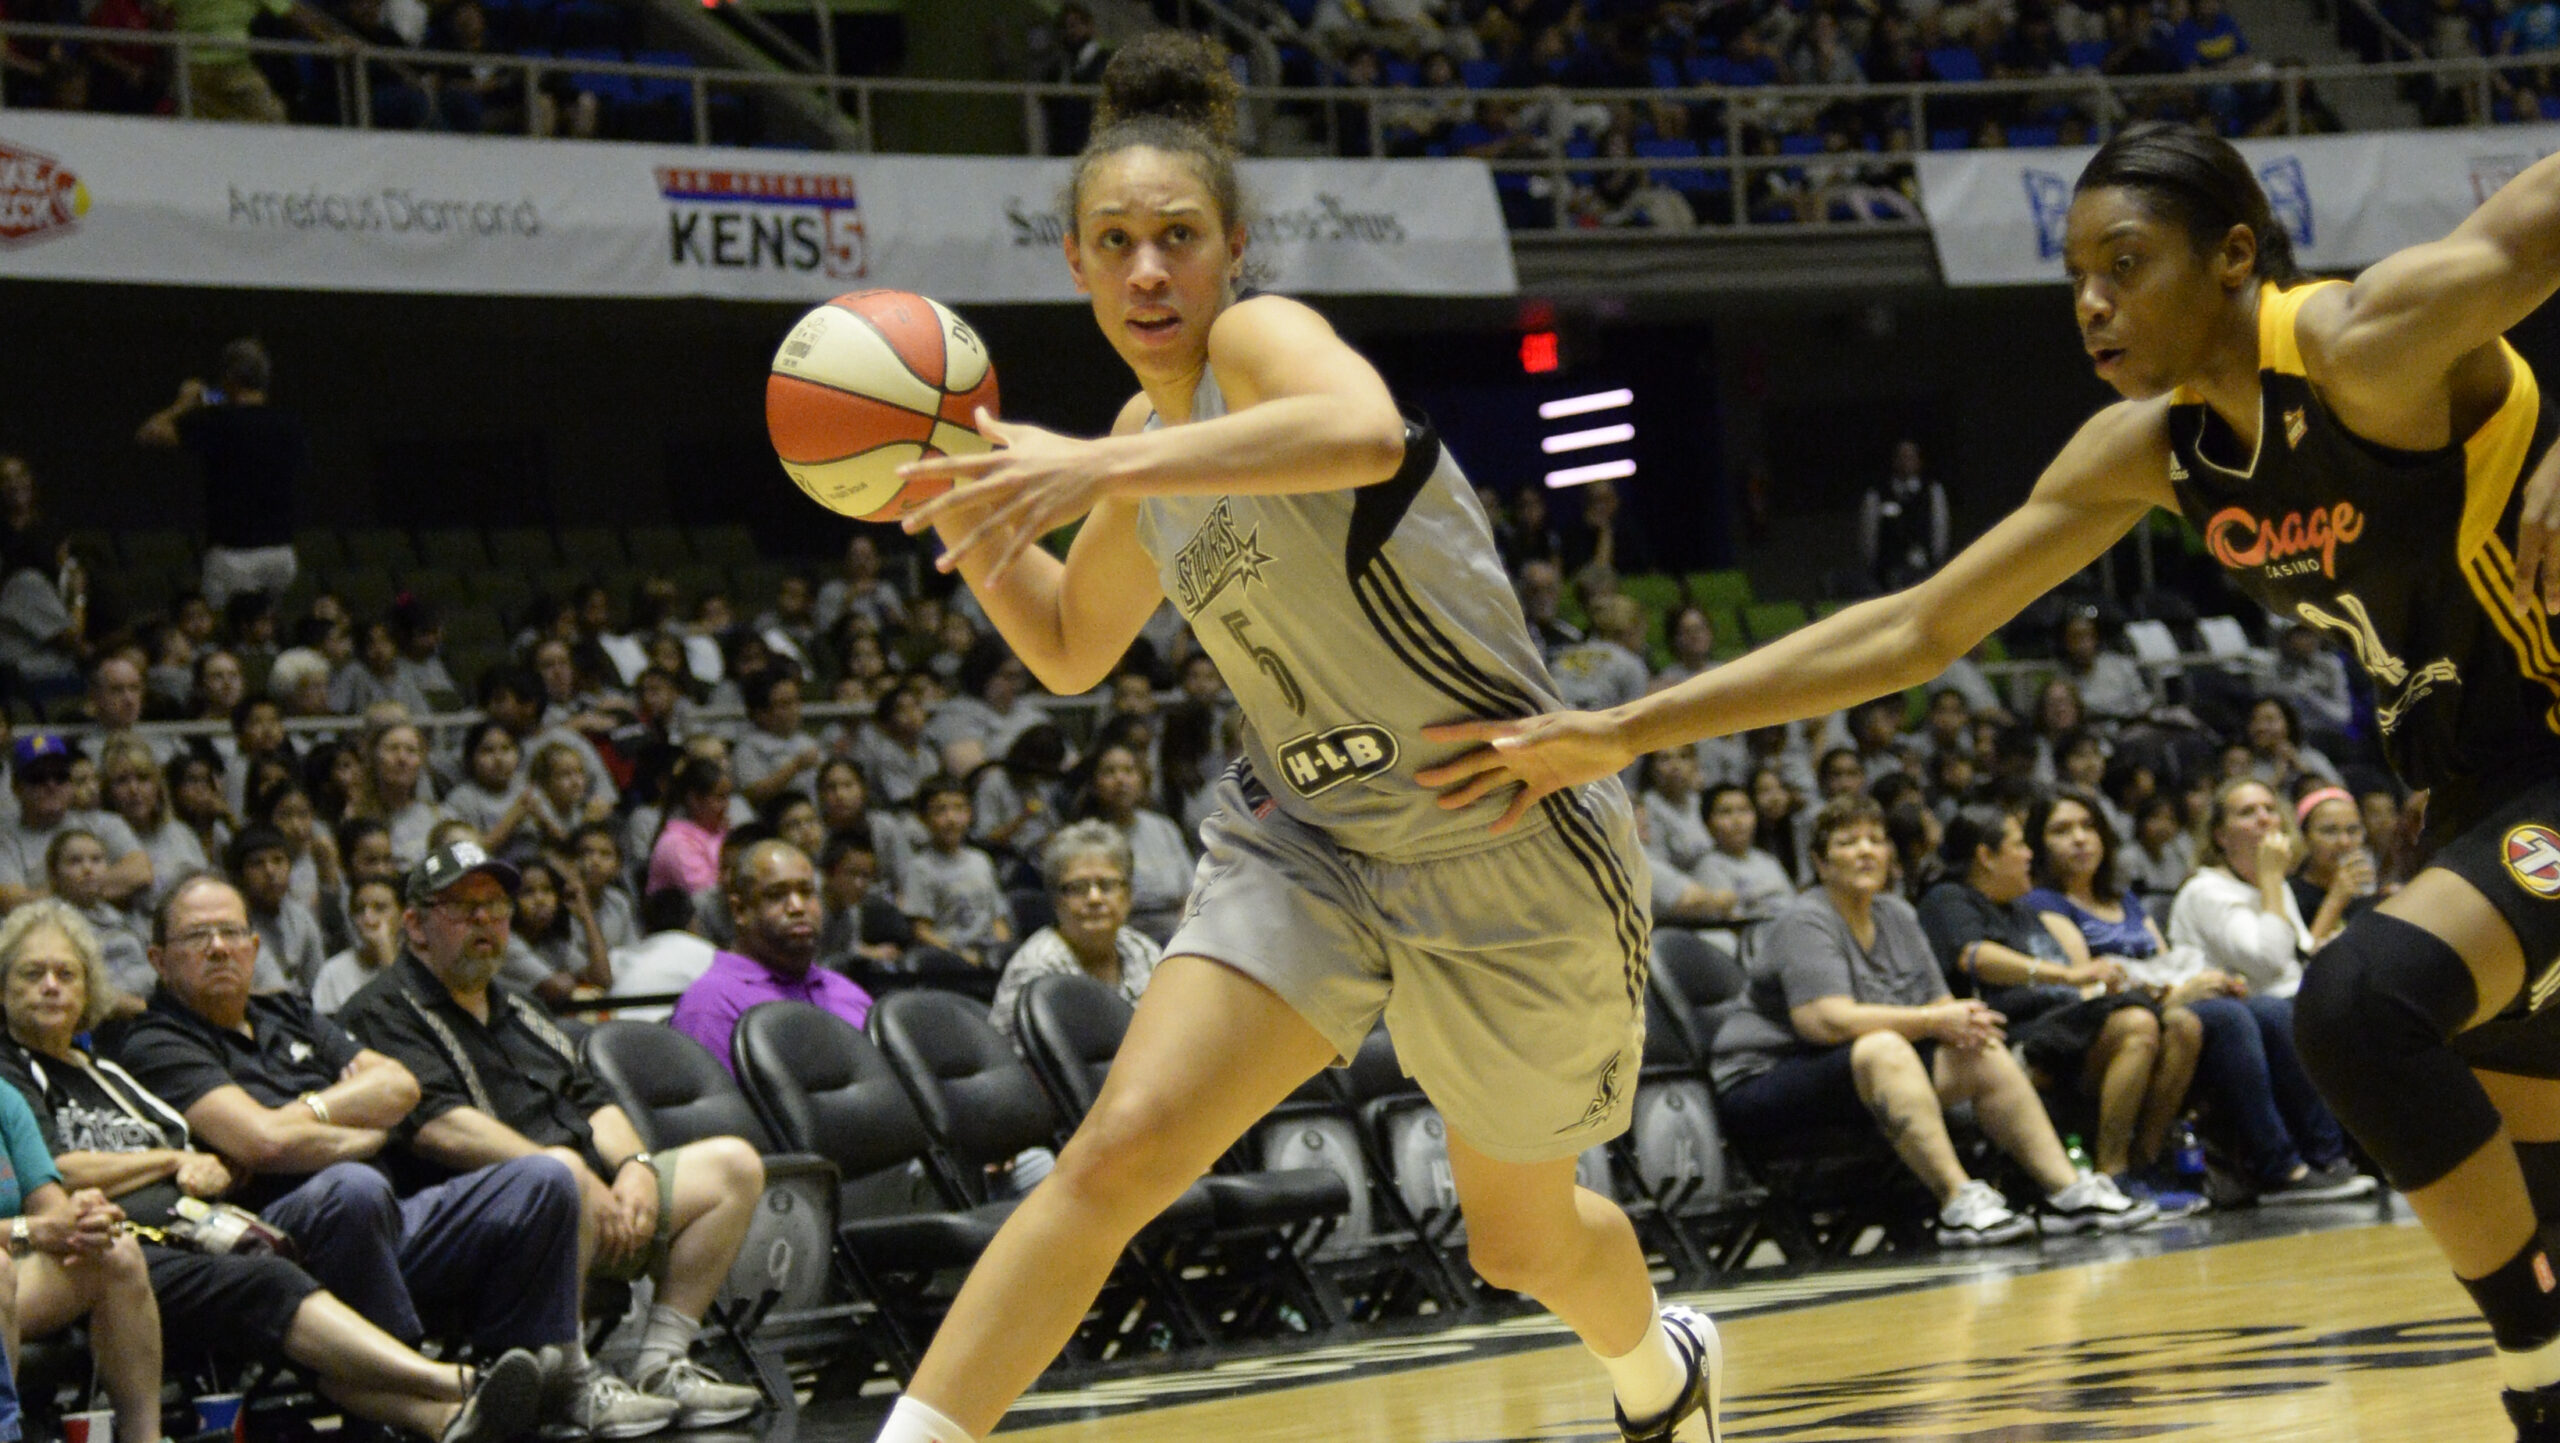 Dishin & Swishin 08/06/15 Podcast: WNBA newcomers include surprising Rookie of the Year frontrunners